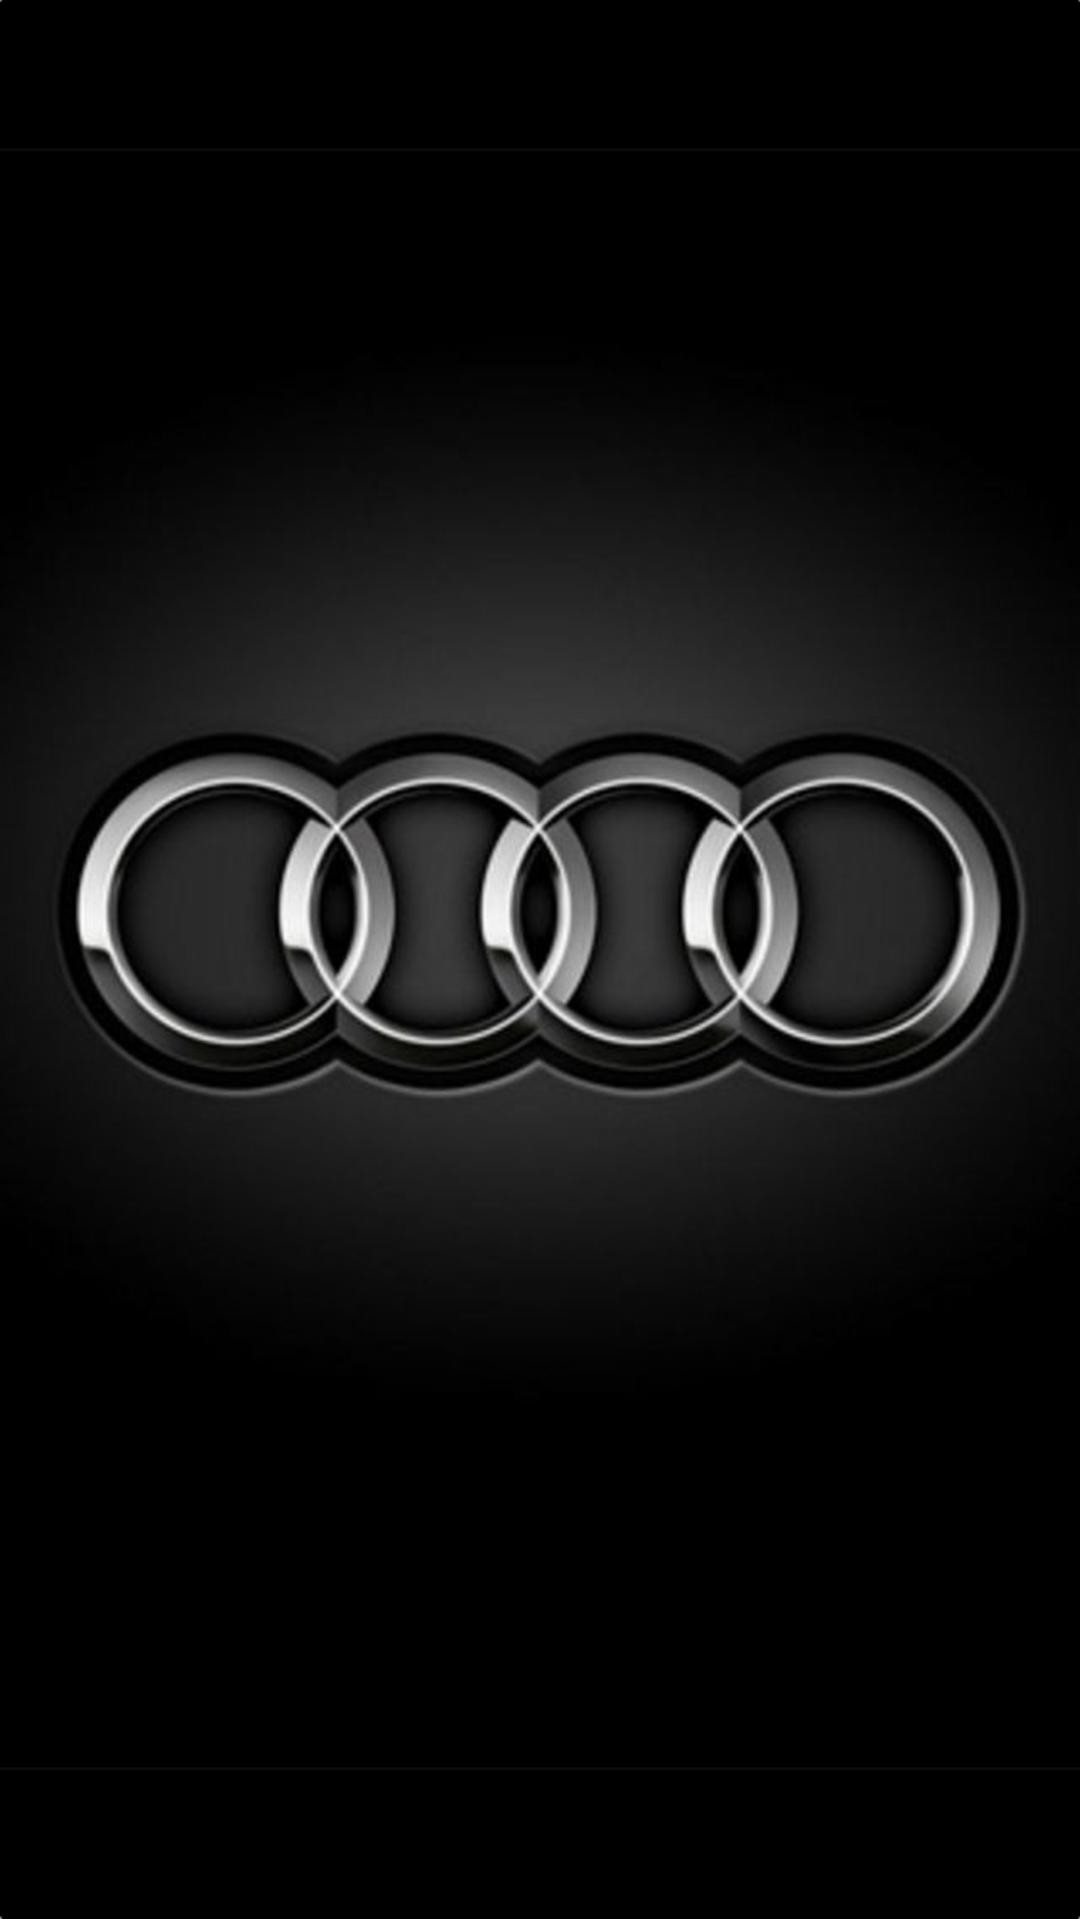 Audi Iphone Wallpaper Posted By Zoey Cunningham